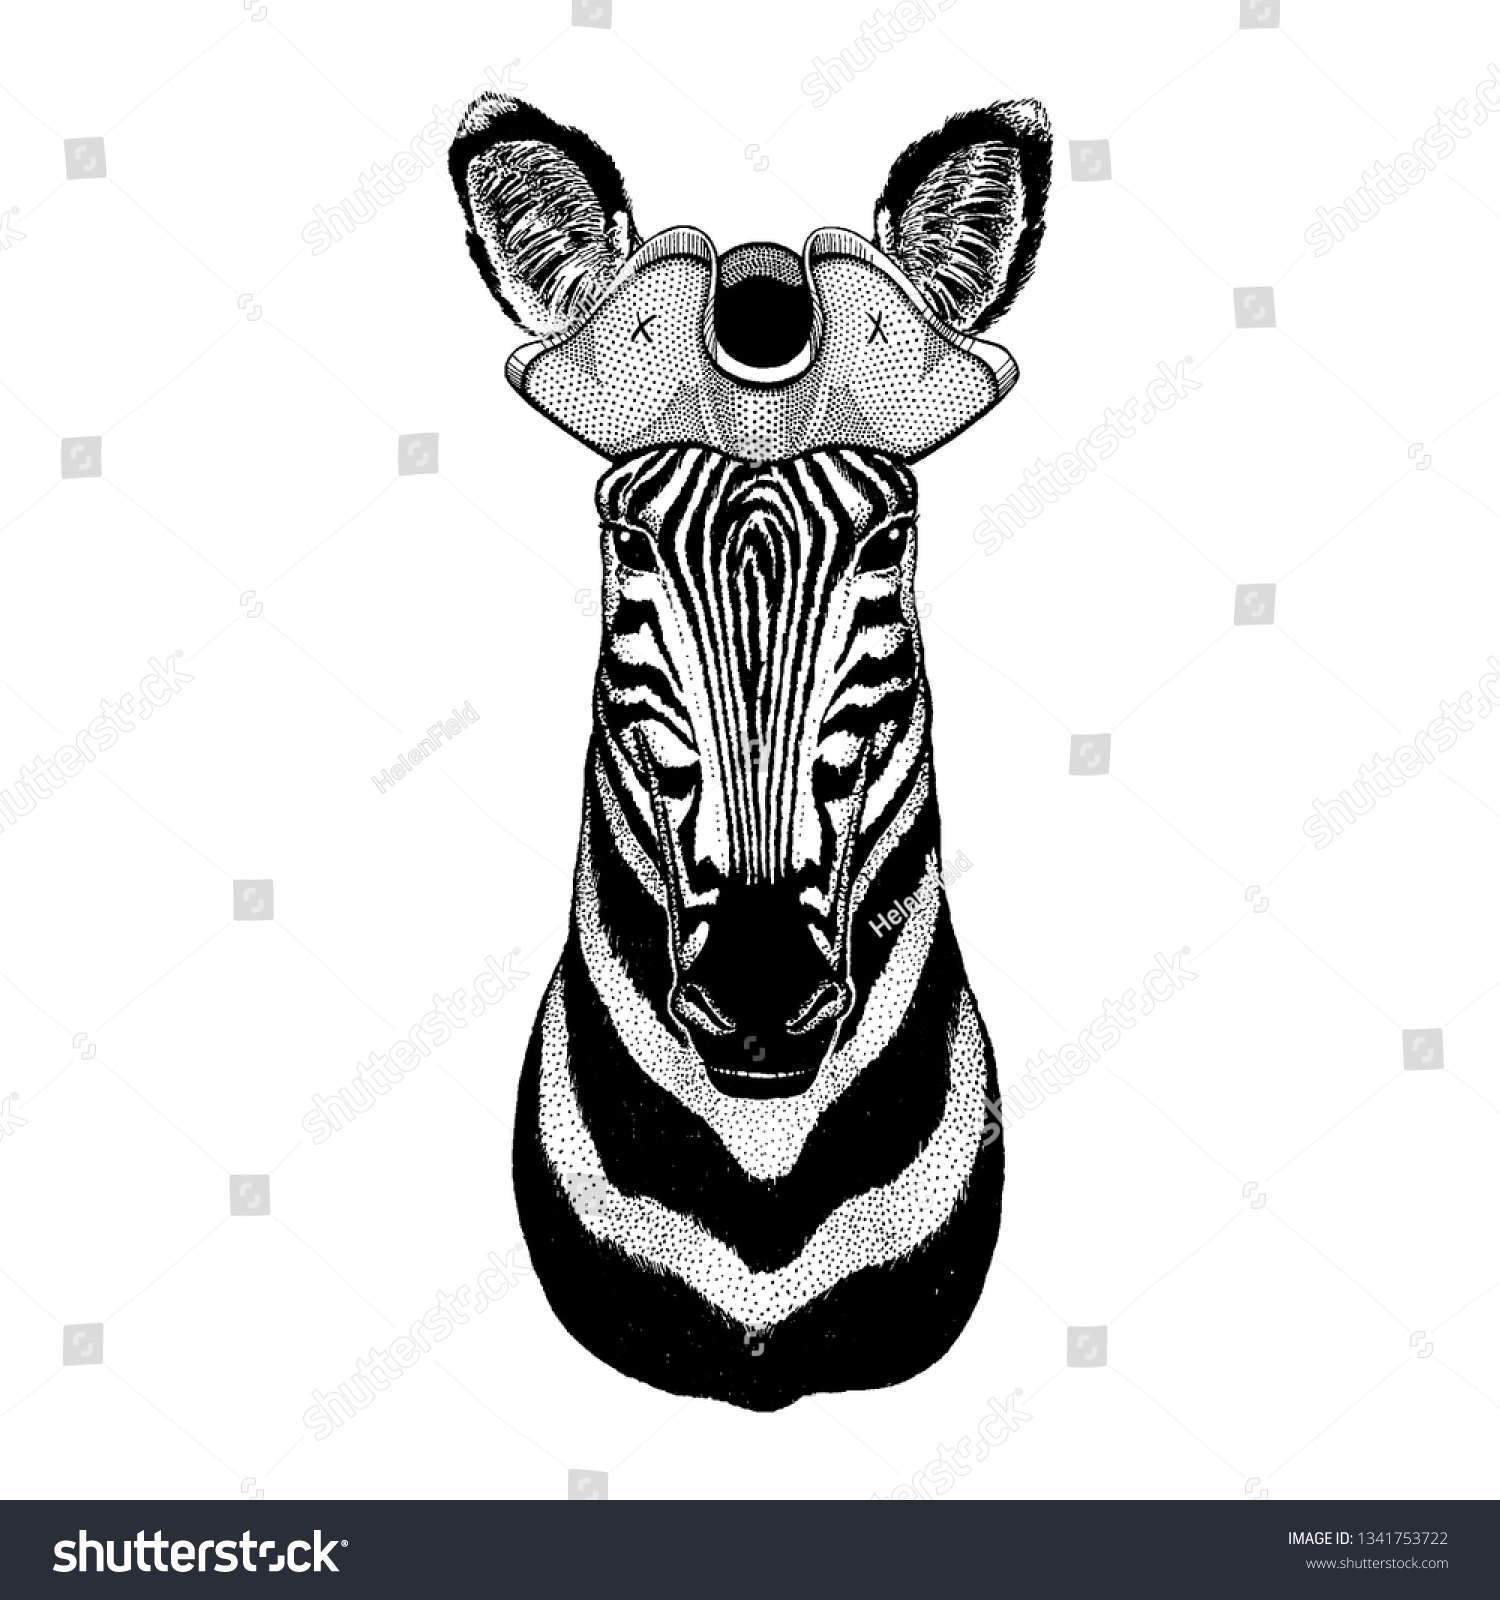 Vector De Stock Libre De Regalias Sobre Zebra Horse Wearing Pirate Tricorn Hat1341753722